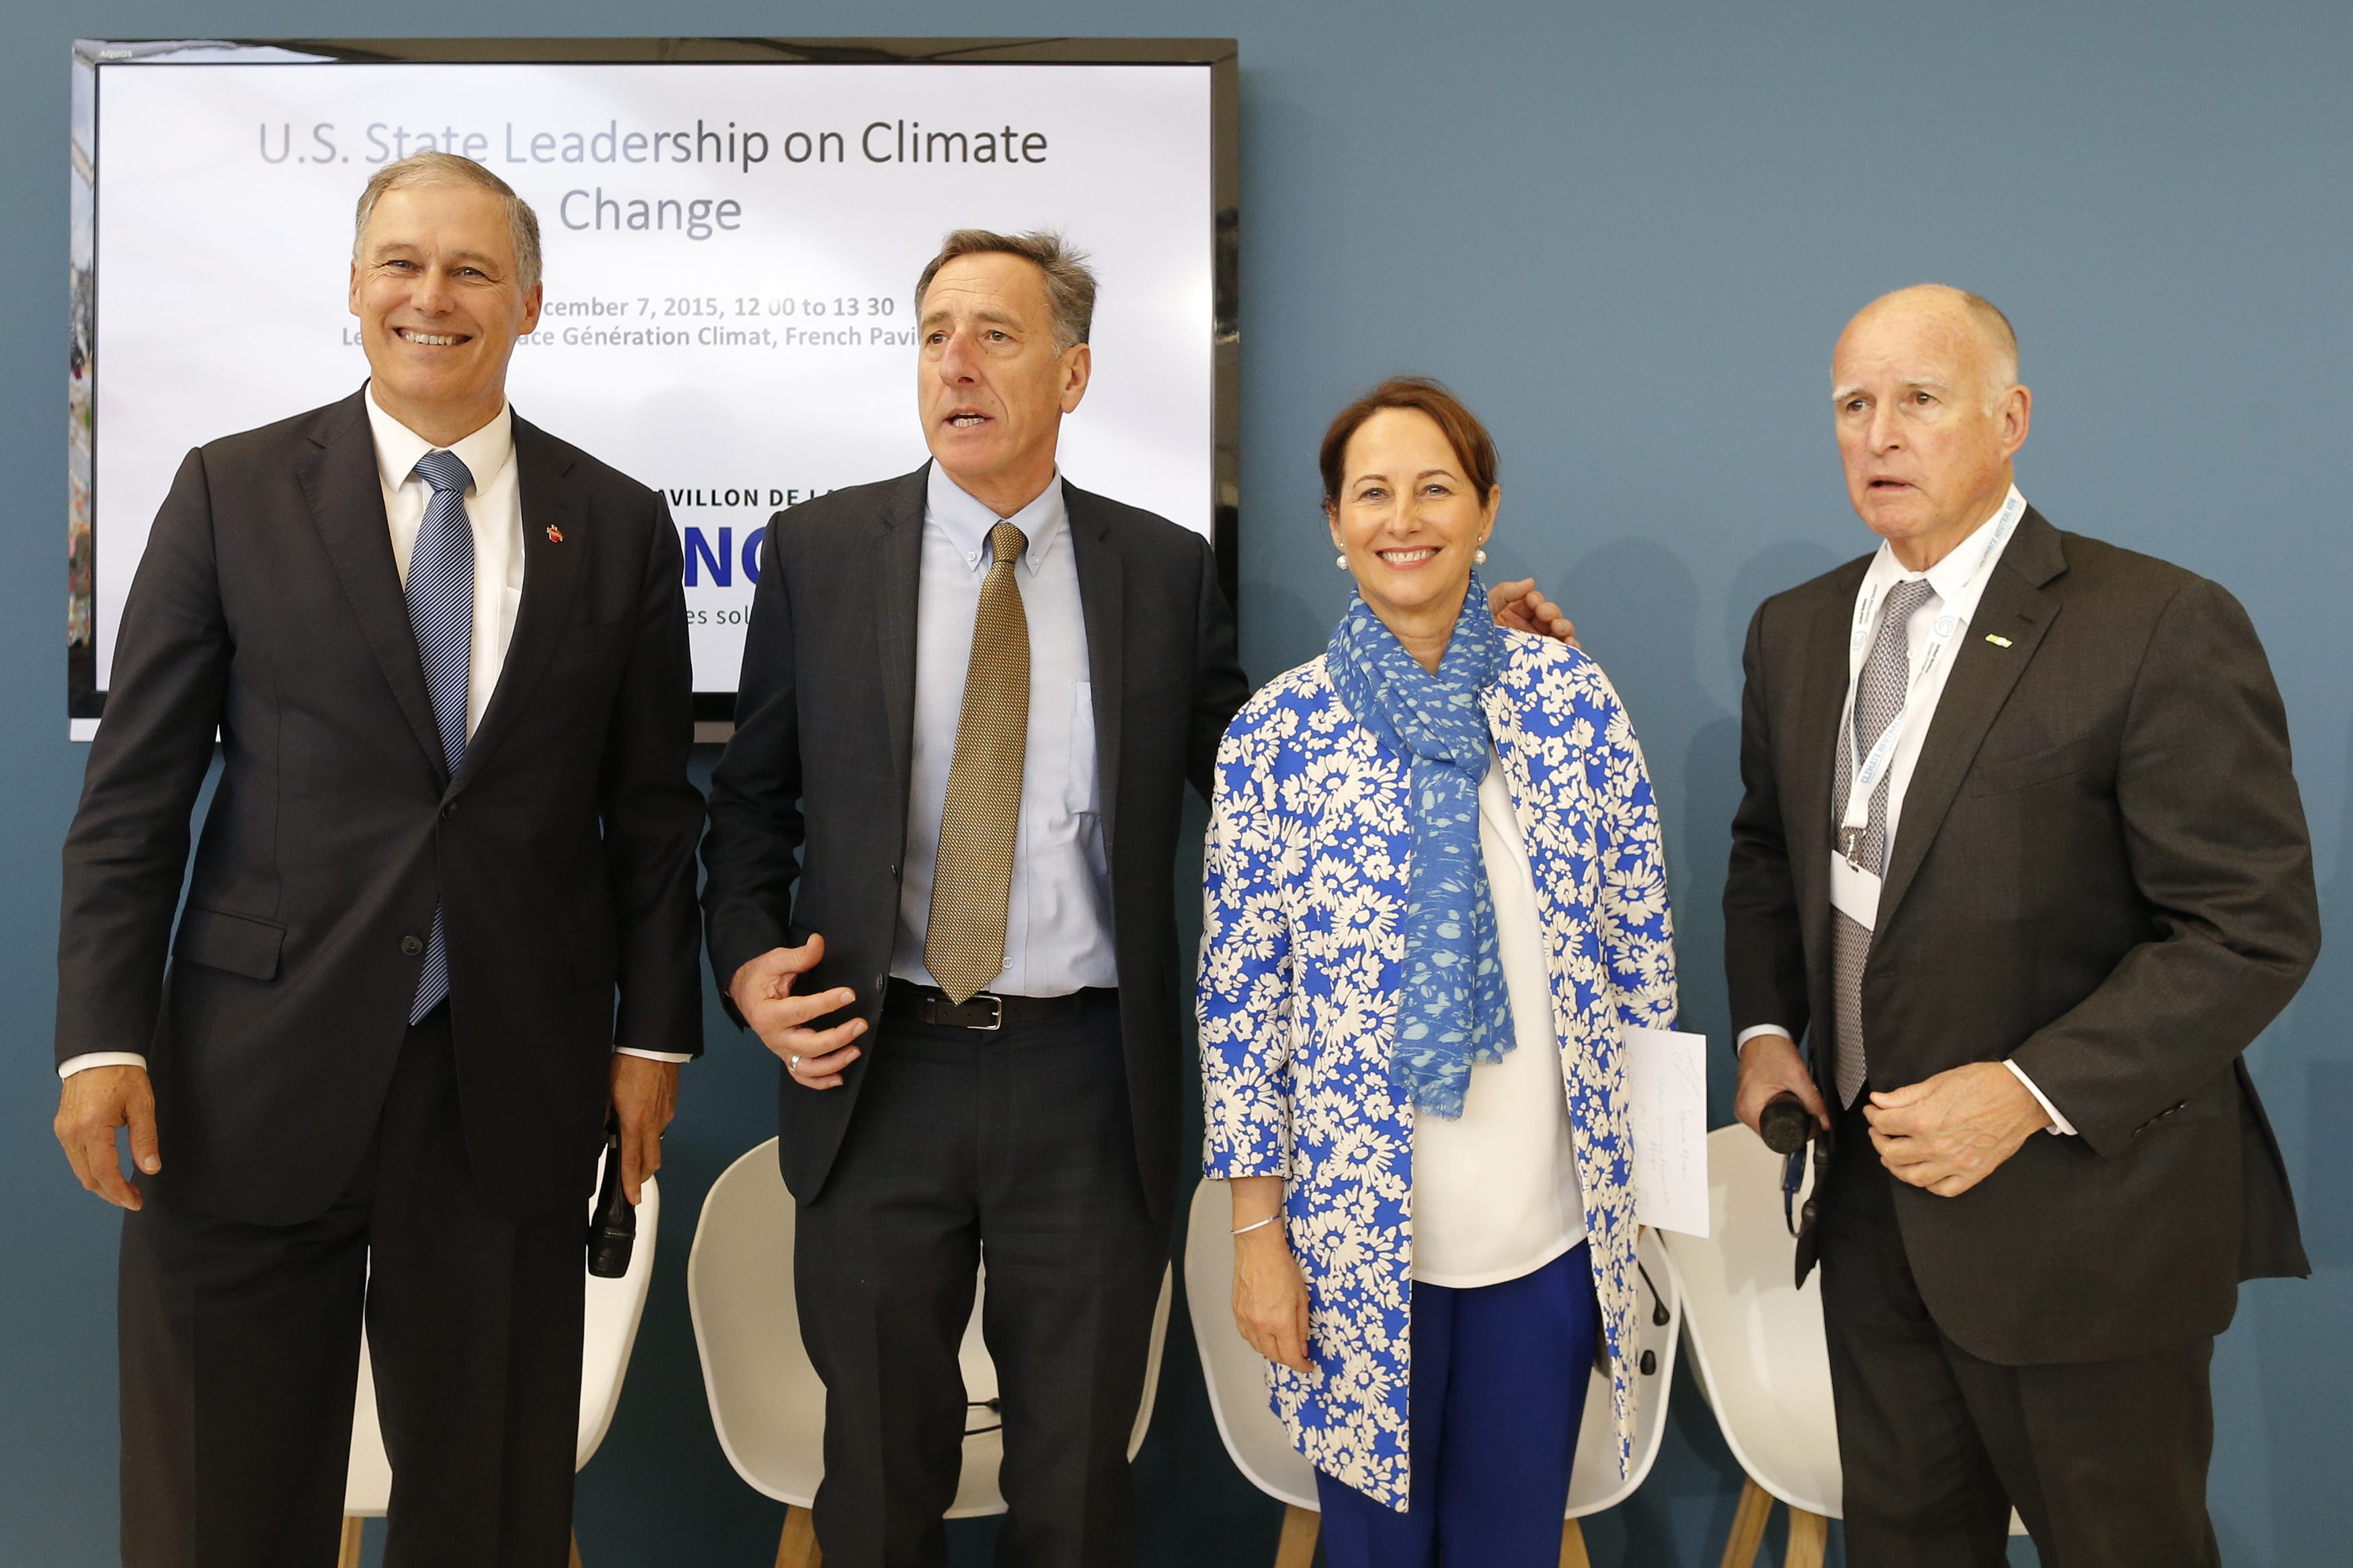 Washington Governor Inslee, Vermont Governor Shumlin, French Ecology Minister Royal, and California Governor Brown pose before a meeting during the World Climate Change Conference 2015 at Le Bourget